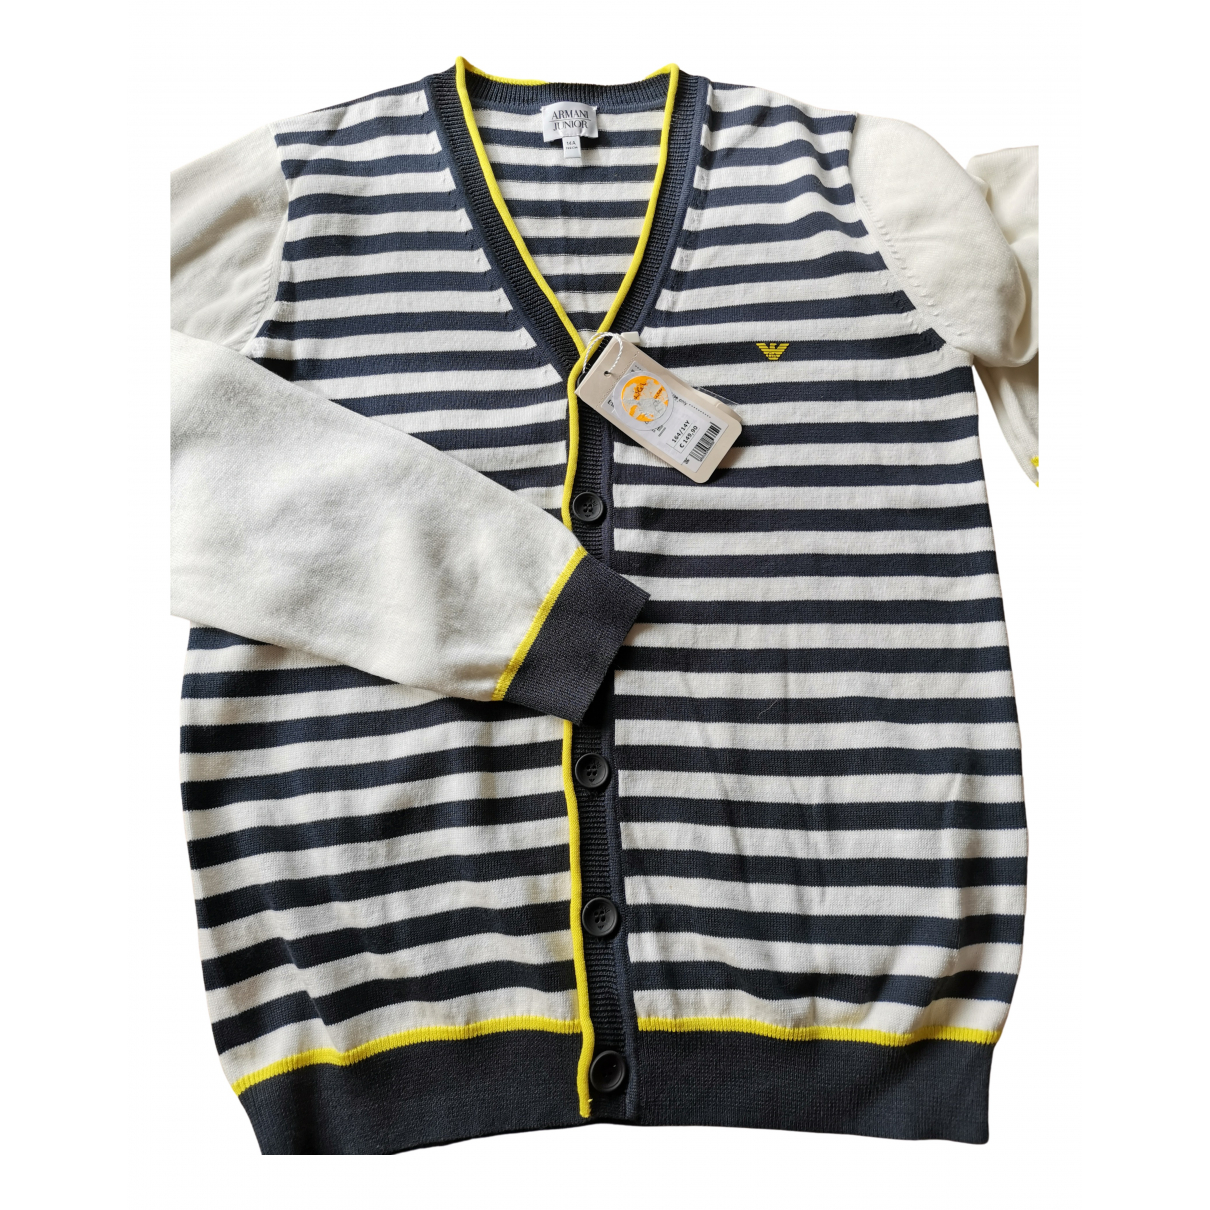 Emporio Armani N Multicolour Cotton Knitwear for Kids 14 years - S FR